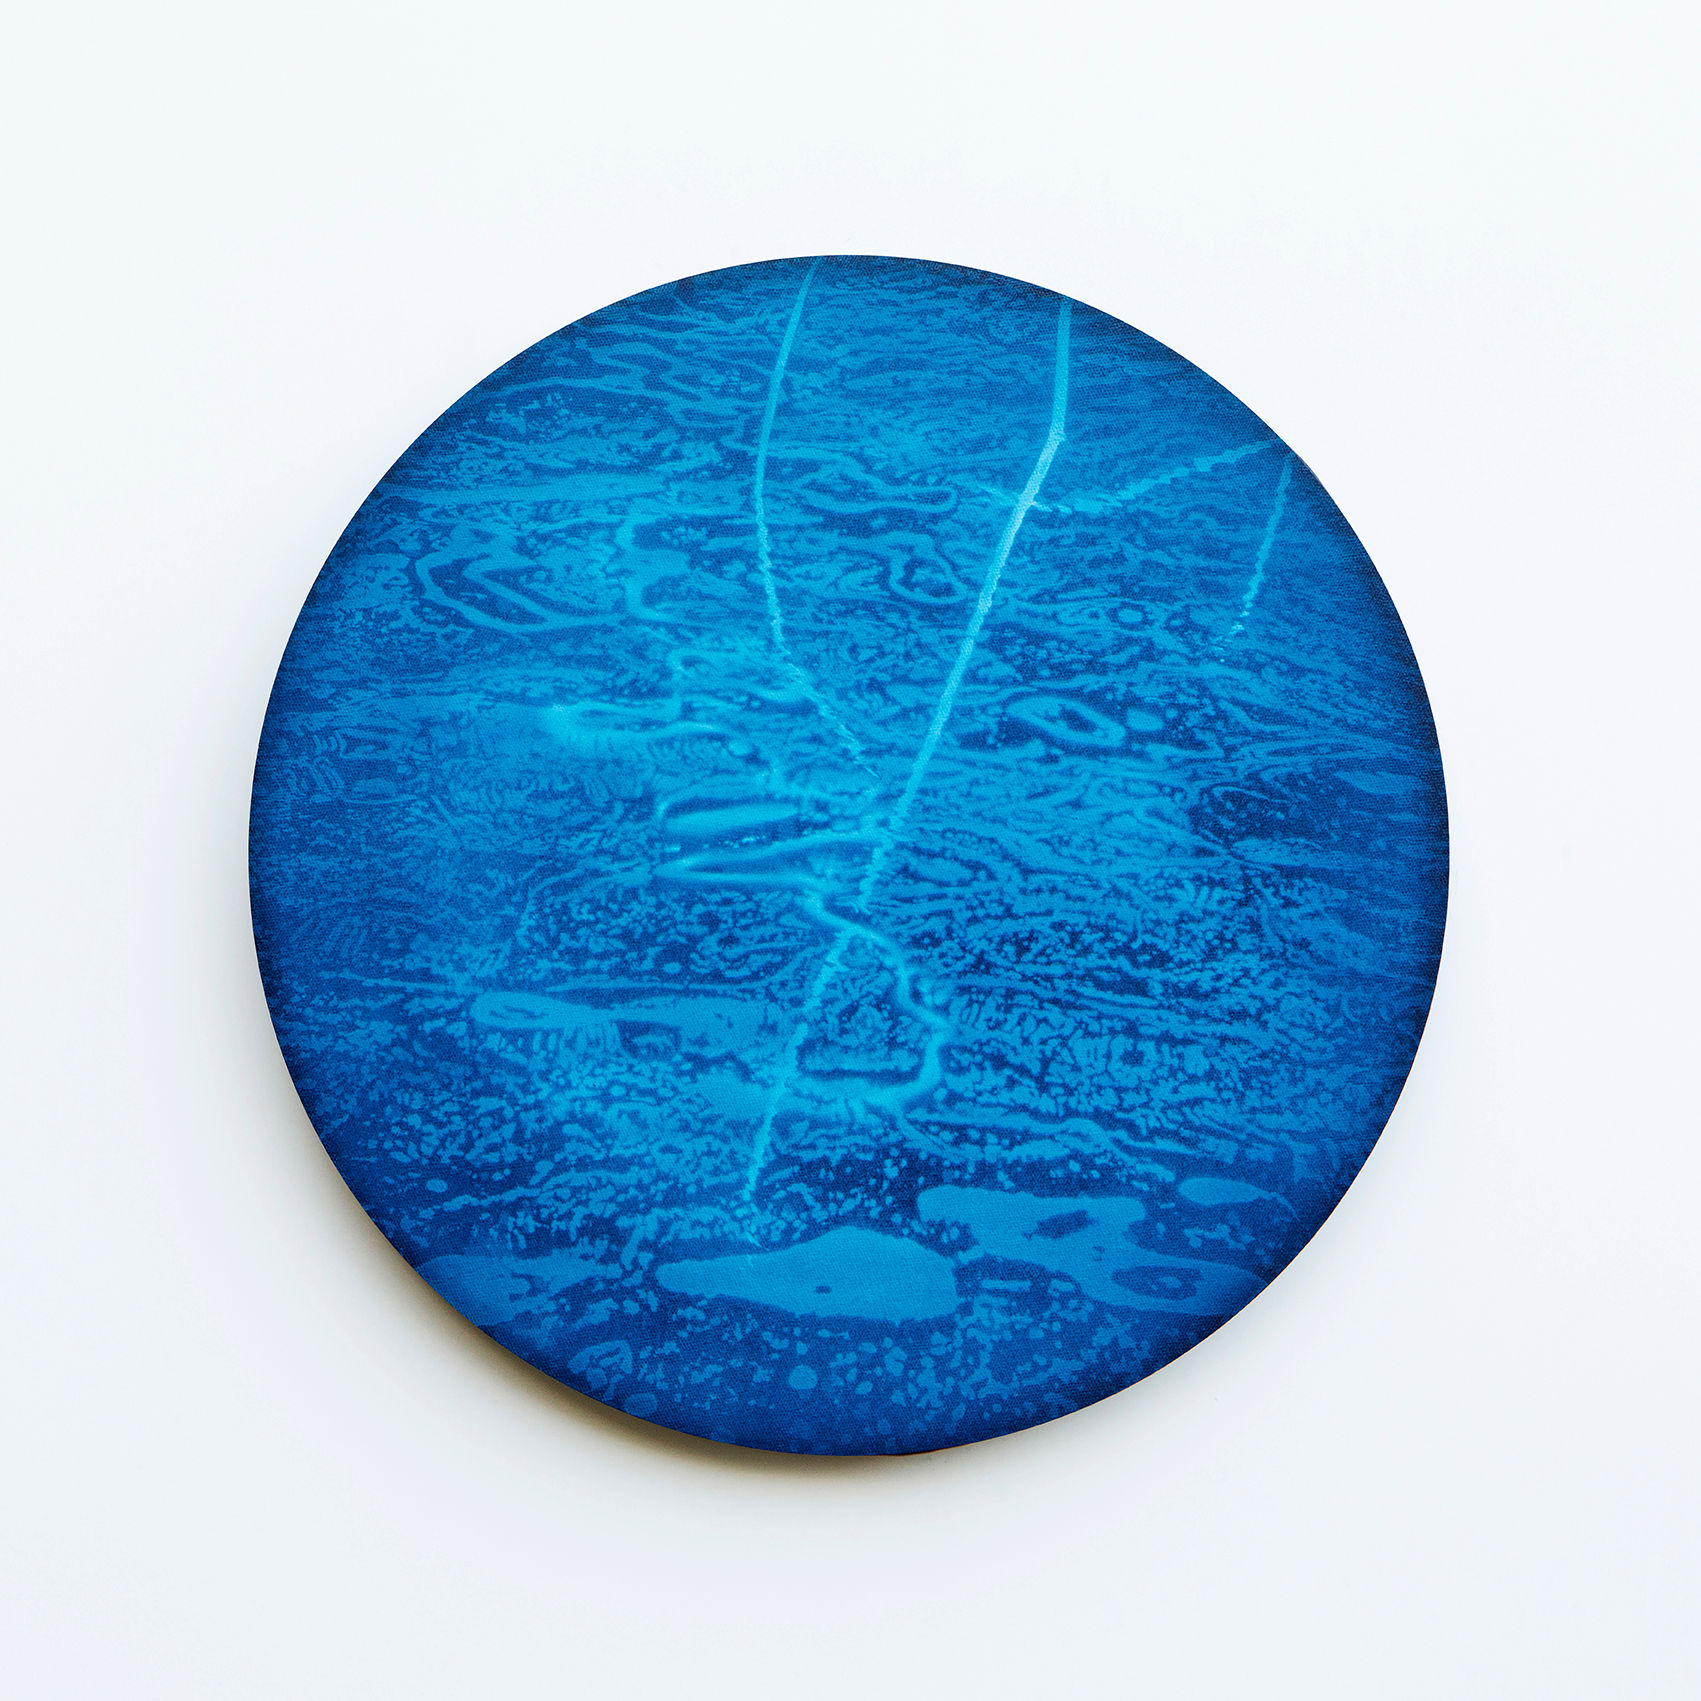 WATERSCAPE_내 안의 바깥 12, Diameter 40cm, Traditional pigment, water-print, water-drawing on canvas, 2018